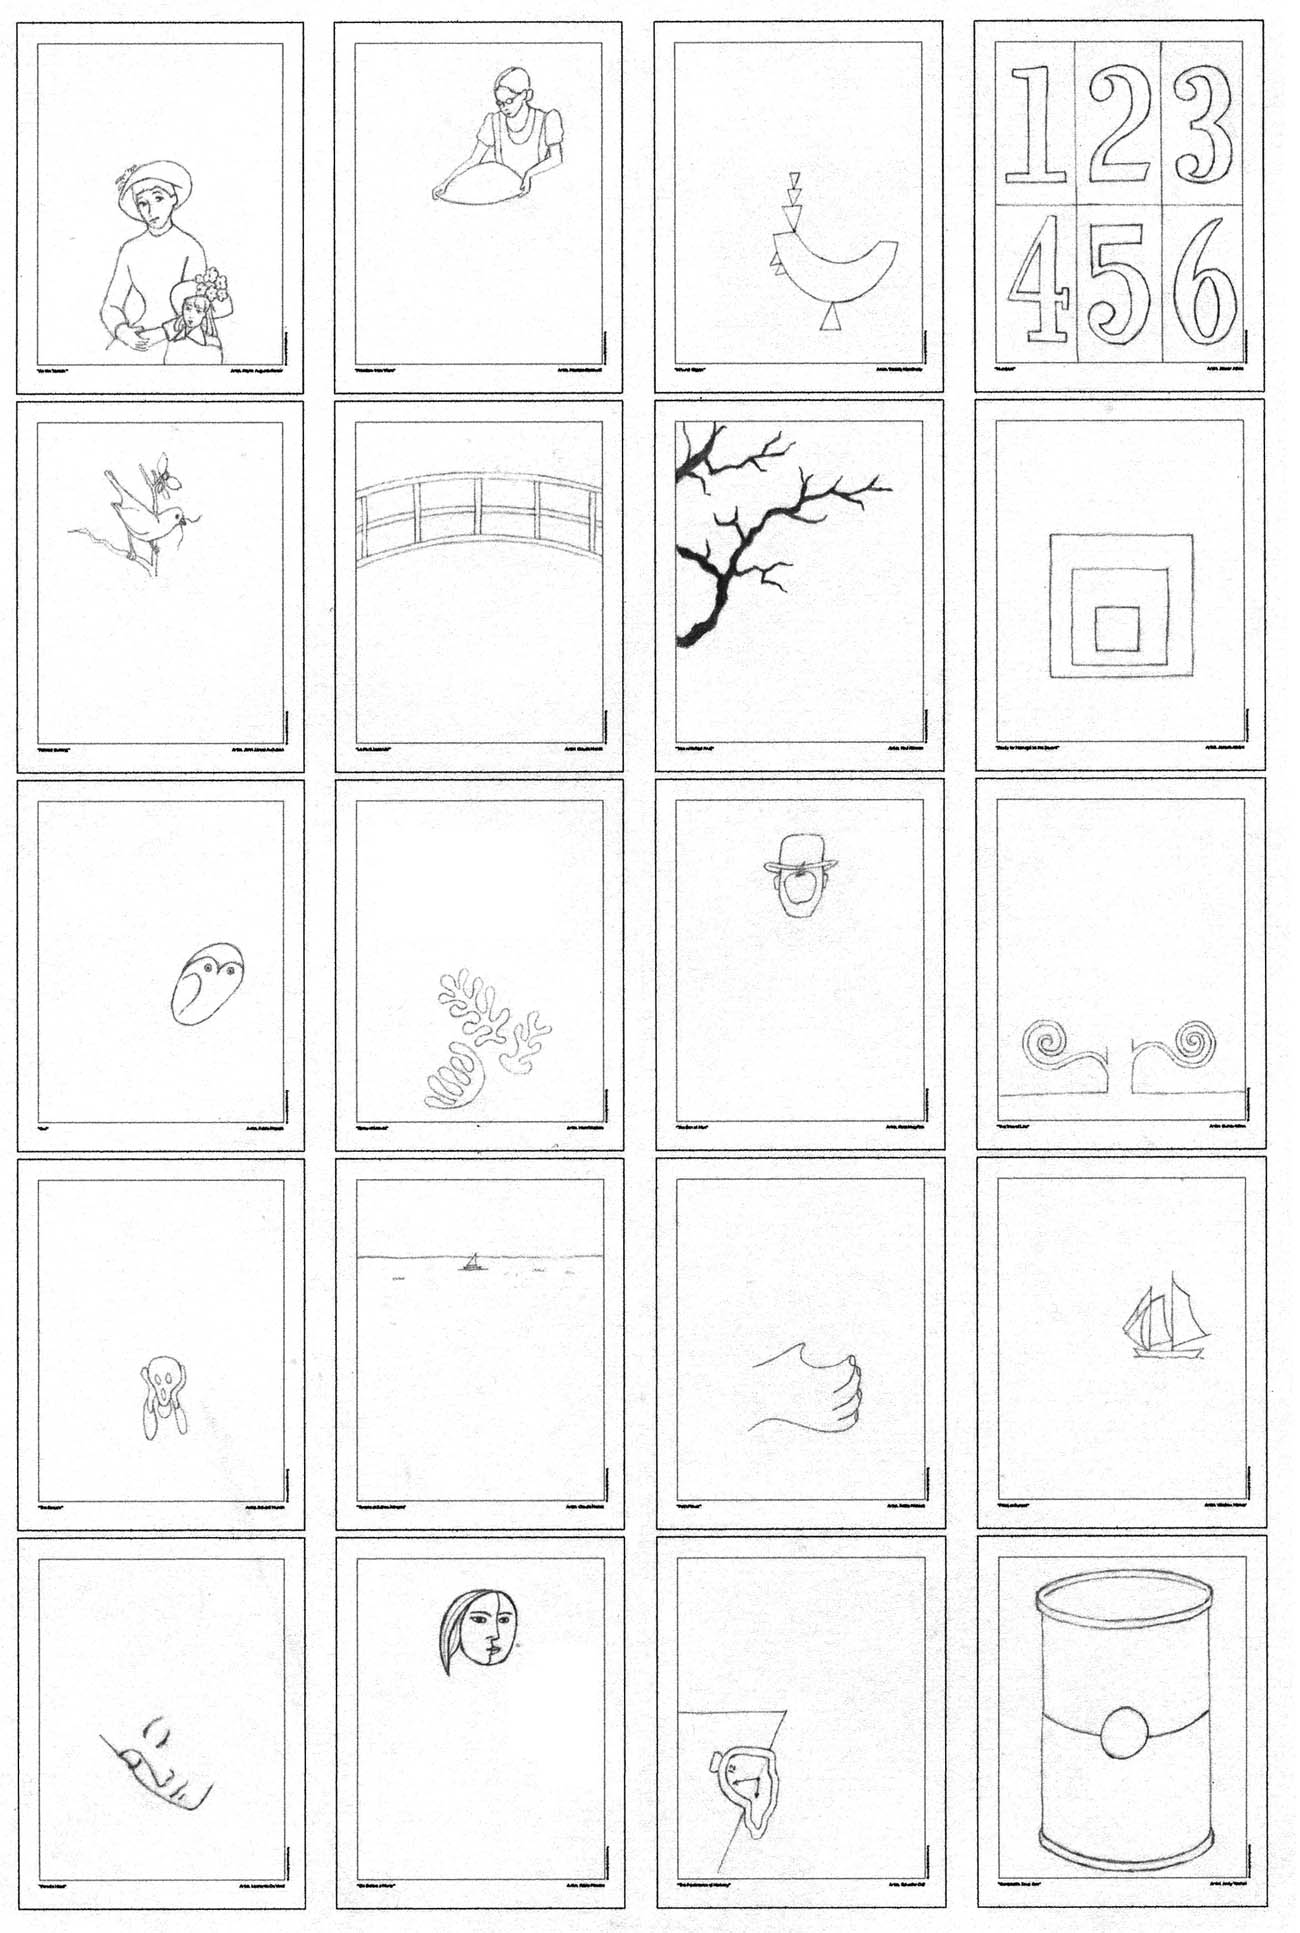 The coloring book e book - Coloring Book 4 Diagram